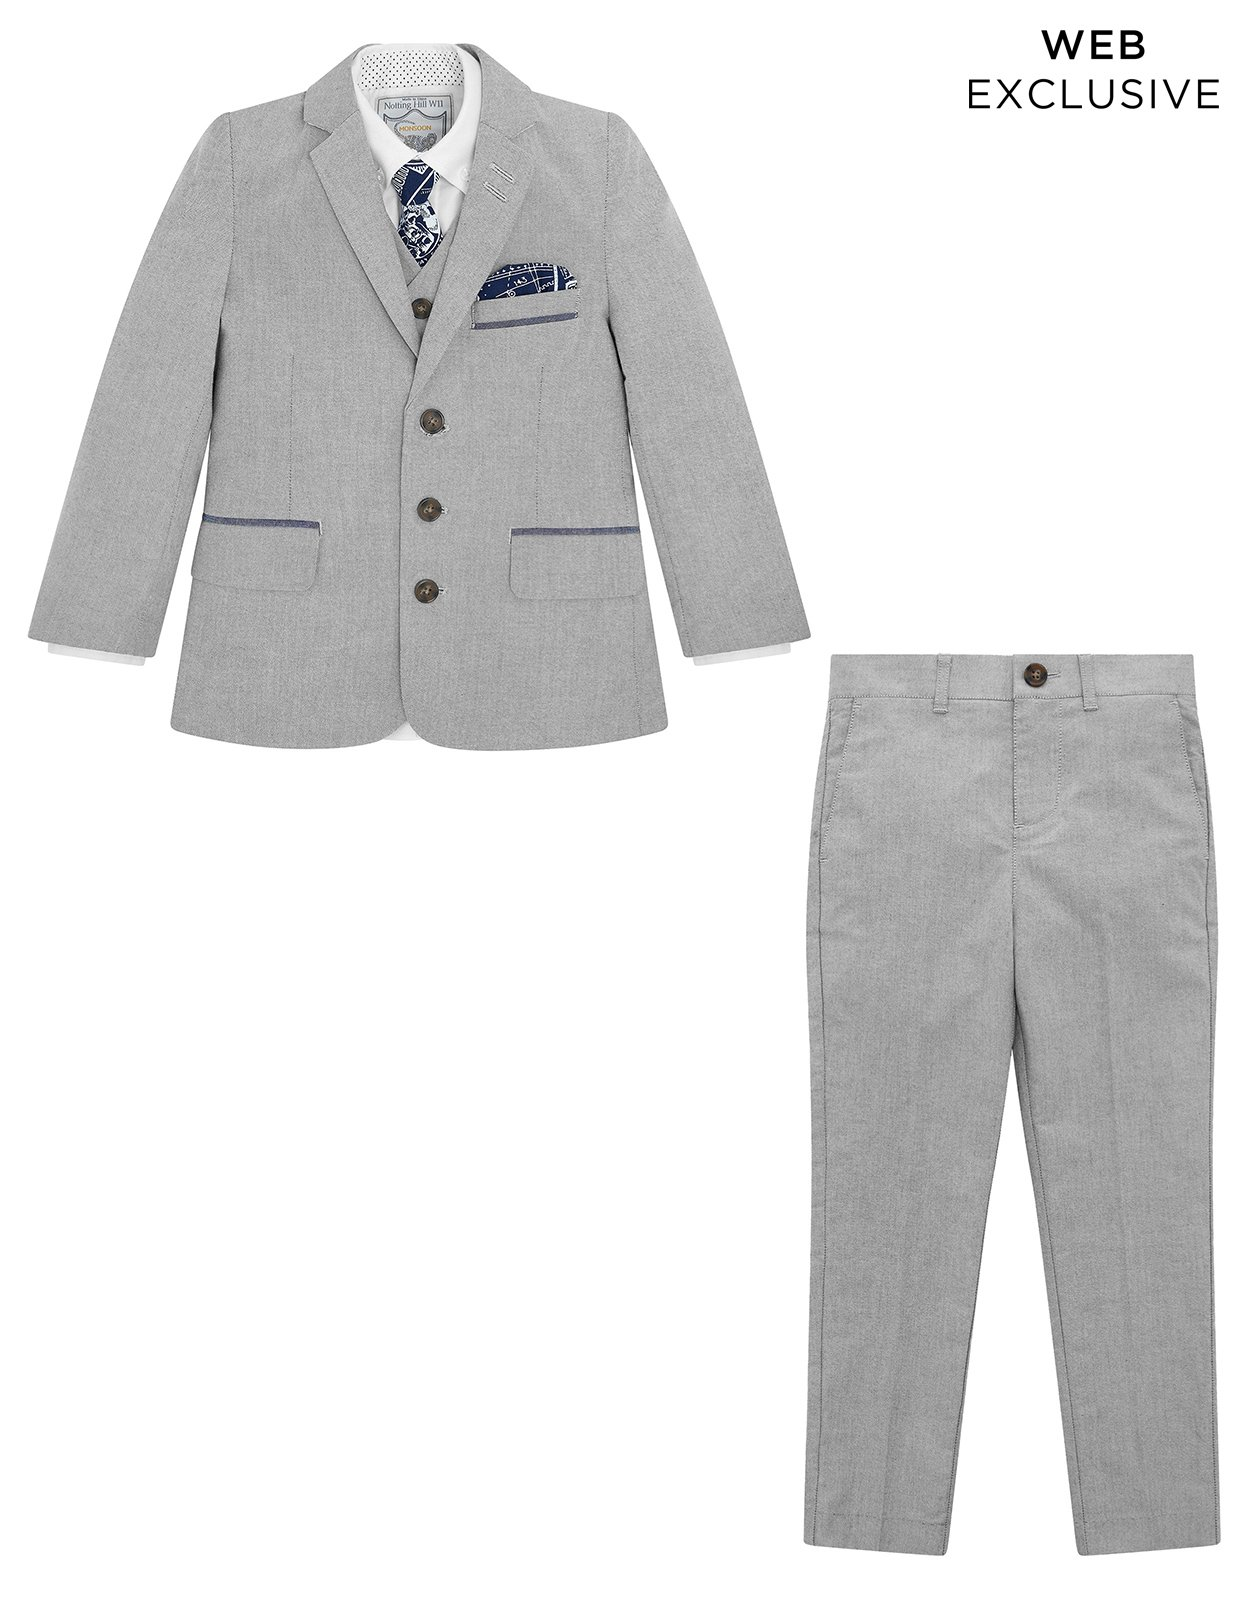 Monsoon Sterling 5PC Suit Set - boys - 4 Years